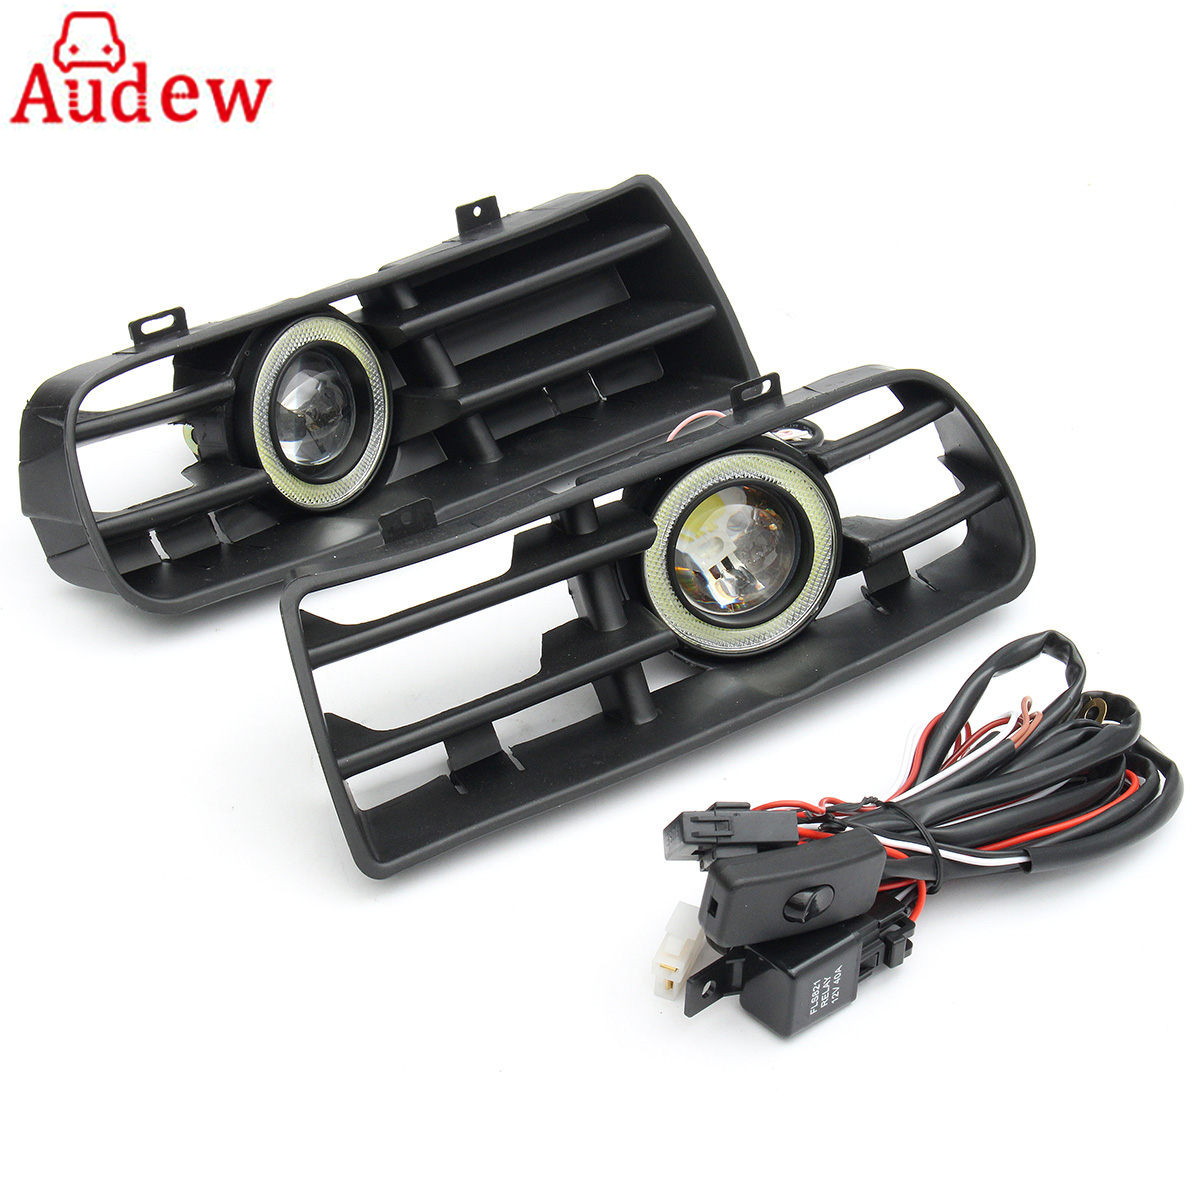 1Pair LED Fog Lights Angel Eyes Lamp Car Front Bumper Grille Grill Cover With Wire Kit For VW Golf MK4 98-04 wisengear front bumper grille fog light angel eyes led lamp with wiring switch kit for mitsubishi lancer 2008 2015 c 5